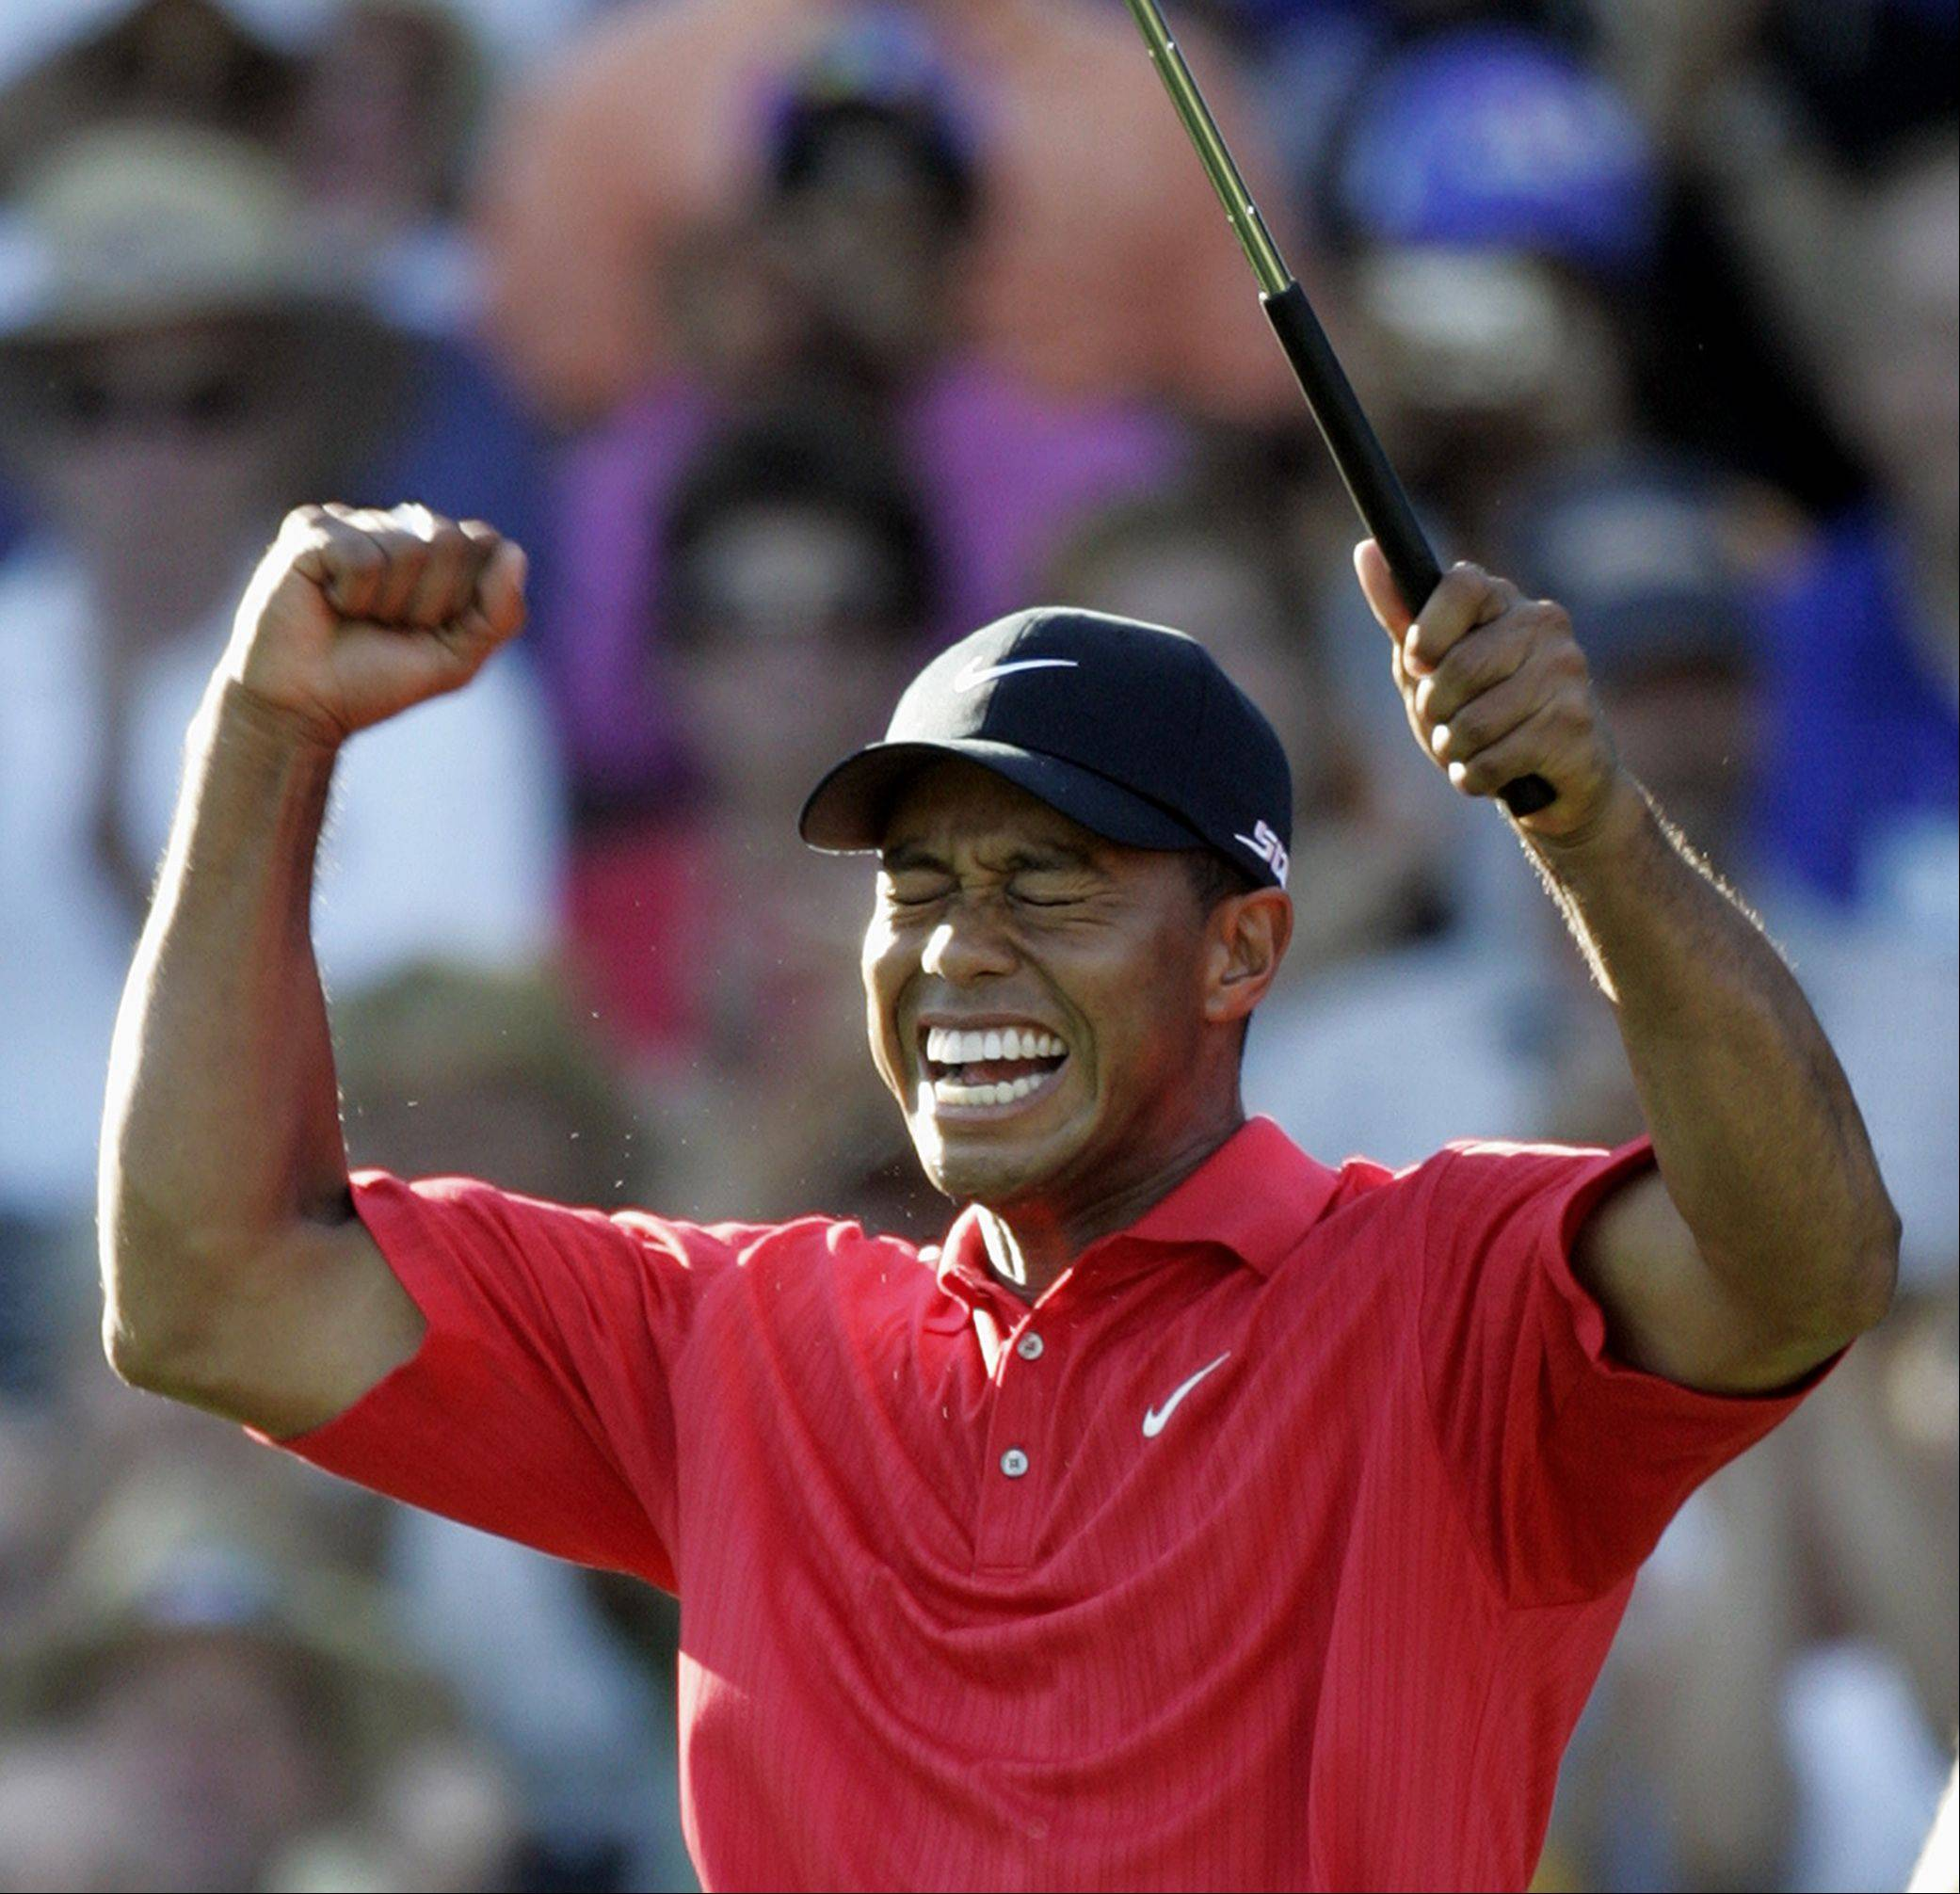 This is an Aug. 20, 2006, file photo showing Tiger Woods celebrating after winning 88th PGA Championship golf tournament at Medinah Country Club Sunday, in Medinah.